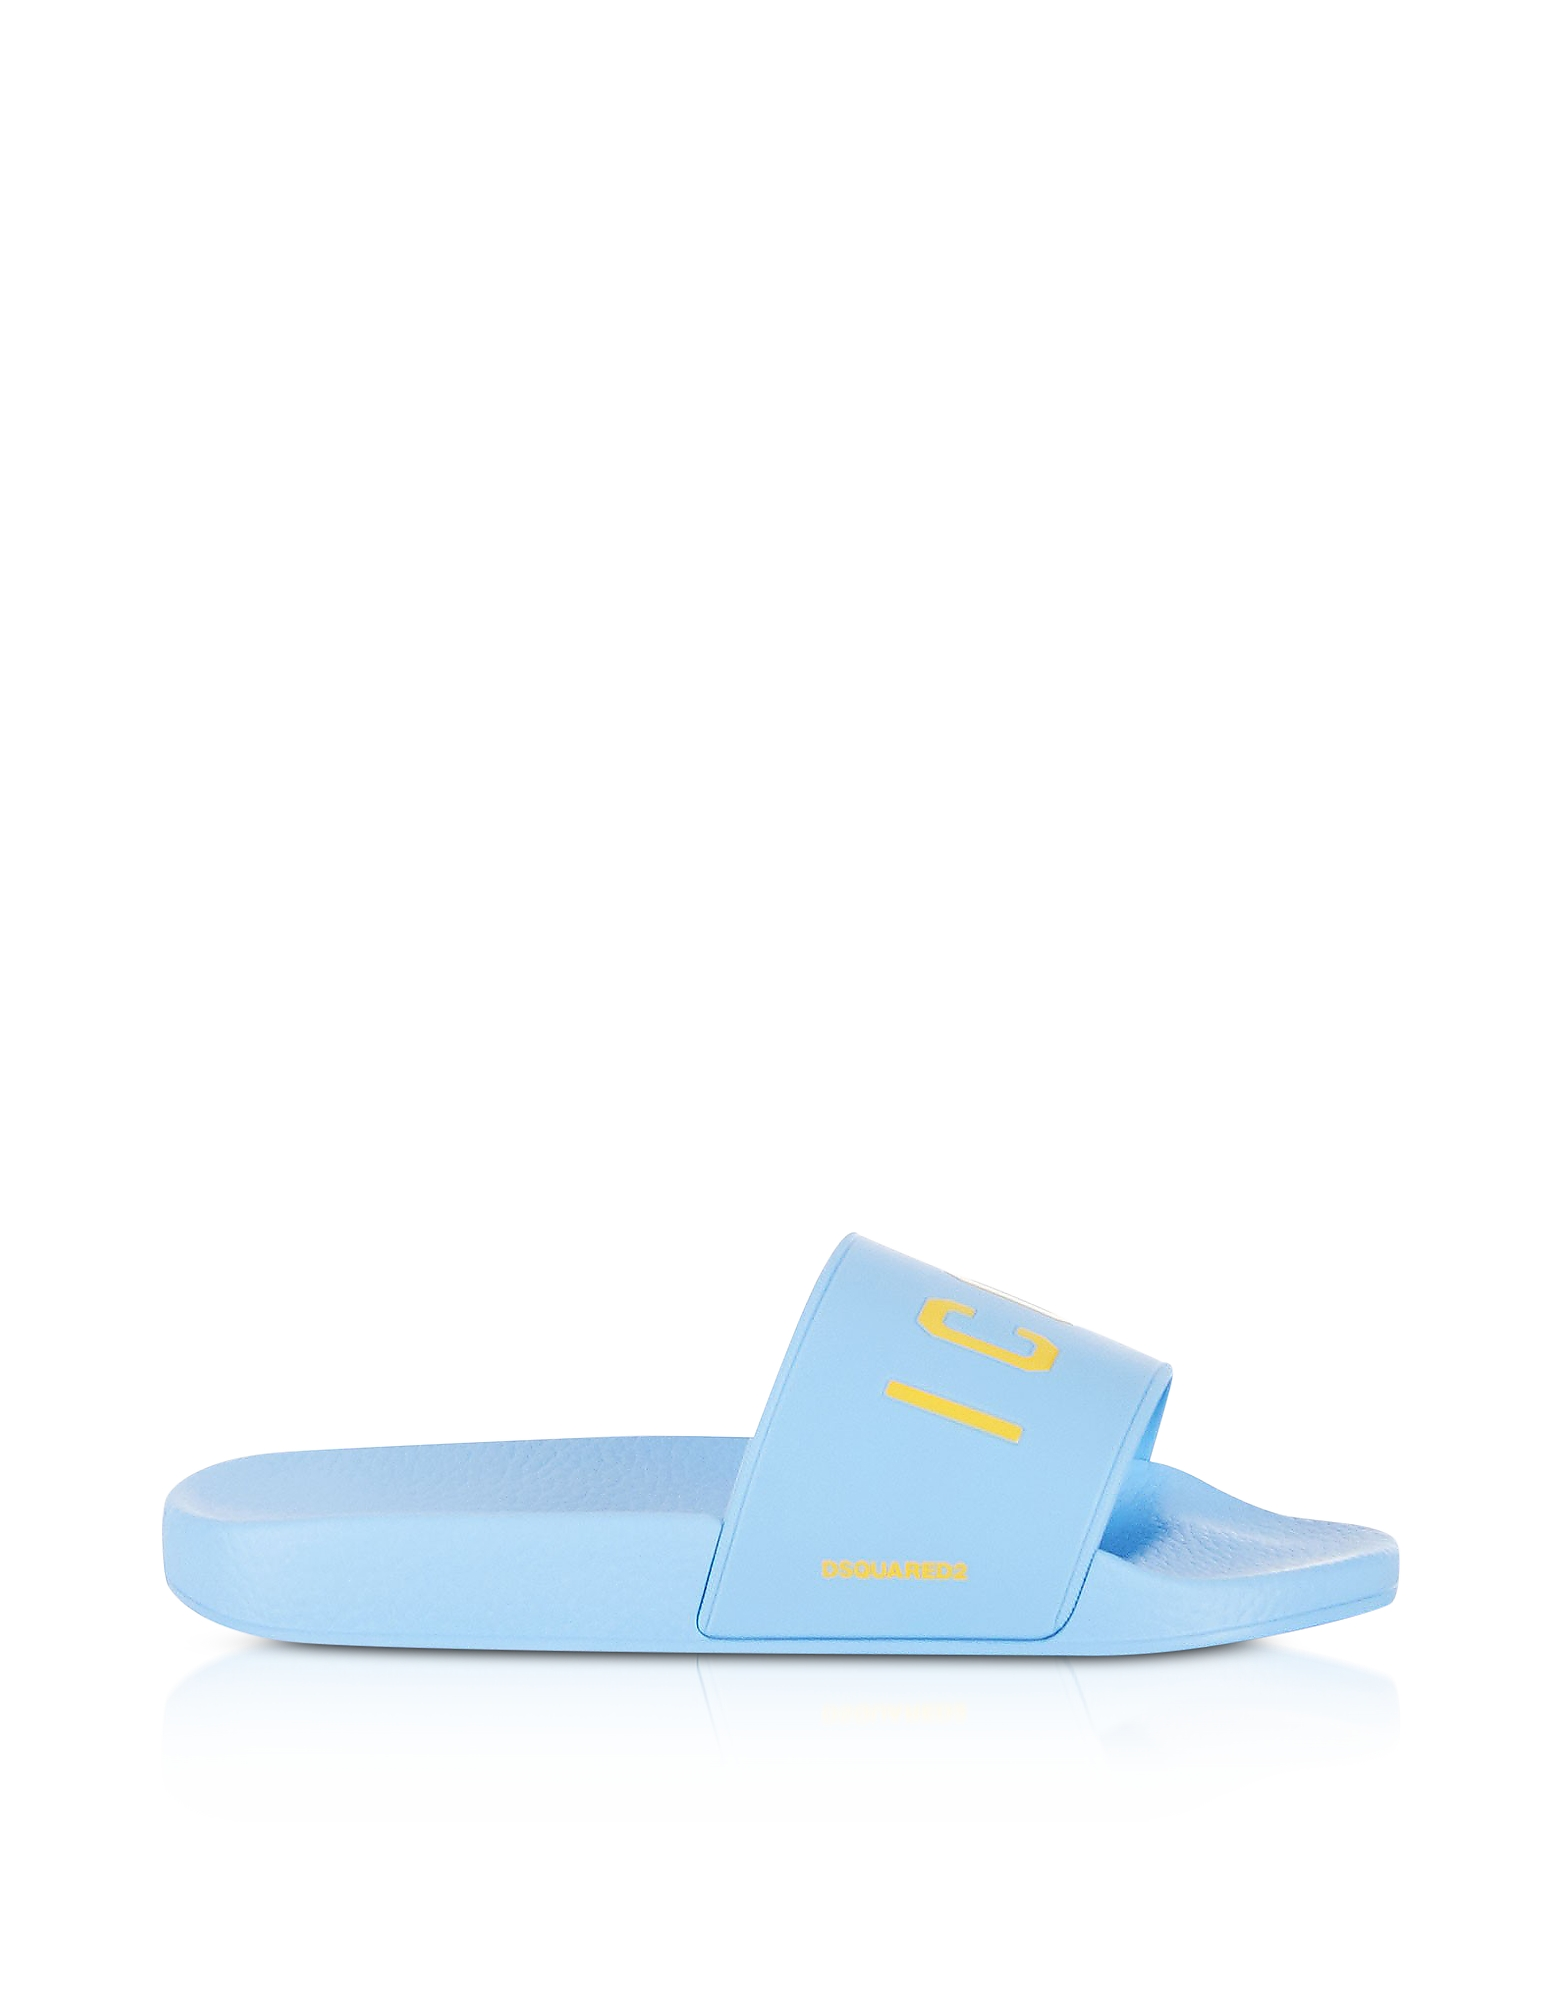 DSquared2 Shoes, Icon Sky Blue Rubber Slide Sandals